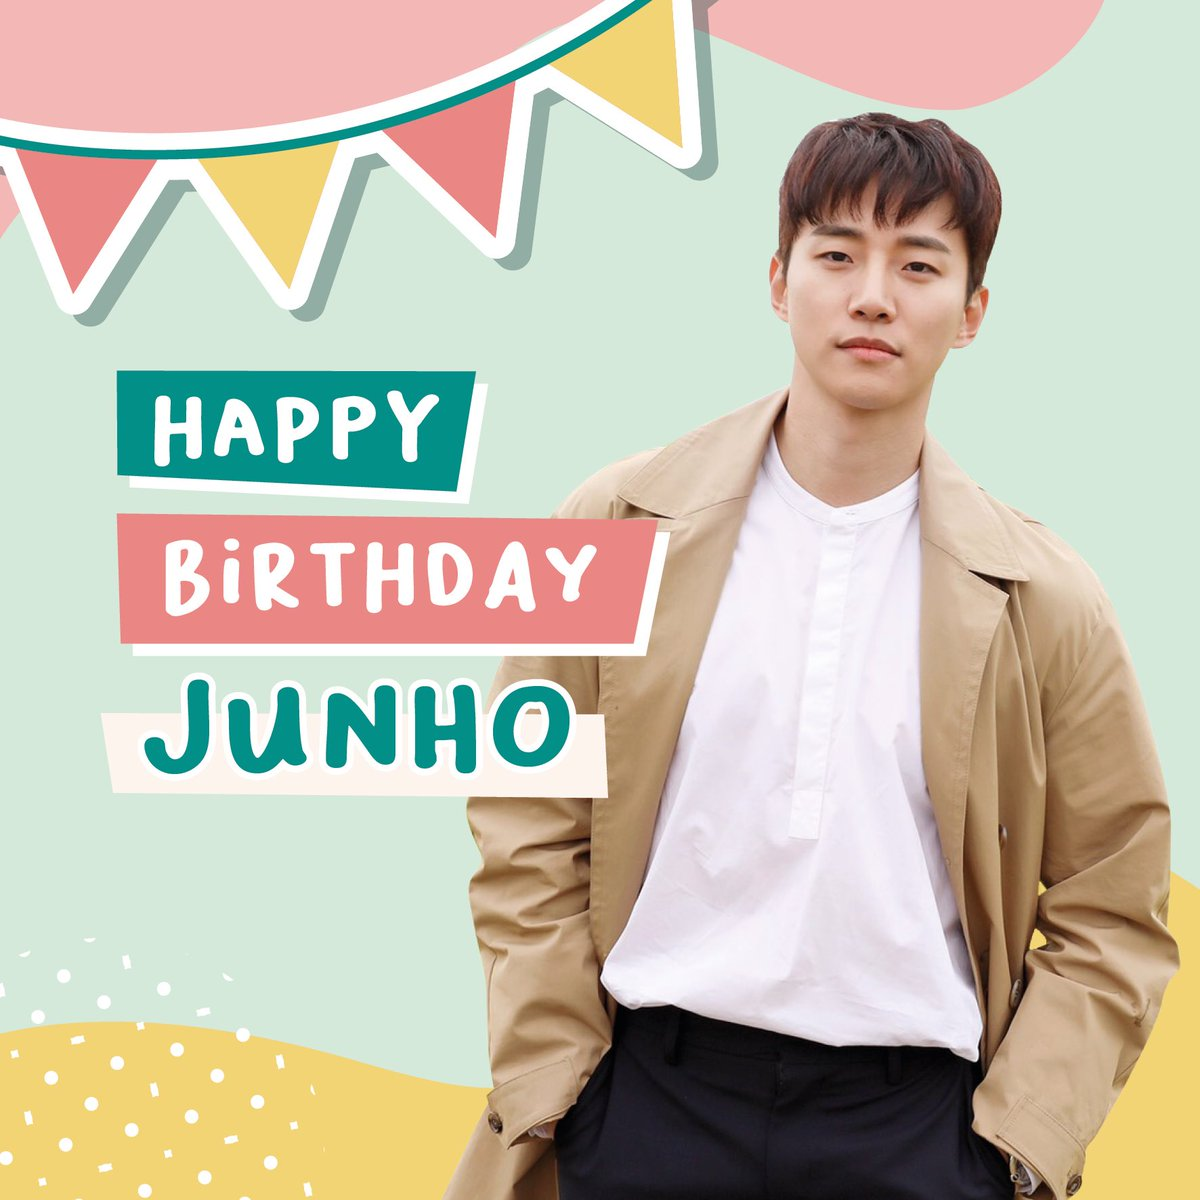 Dear our sunshine, thank you for being a devoted person all the time. We can't wait to see more and more sides of Lee Junho. Happy birthday, @dlwnsghek 💛  #준호라는_눈꽃이_내려온_날  #준호야_해피벌스데잊 #HappyJunhoDay